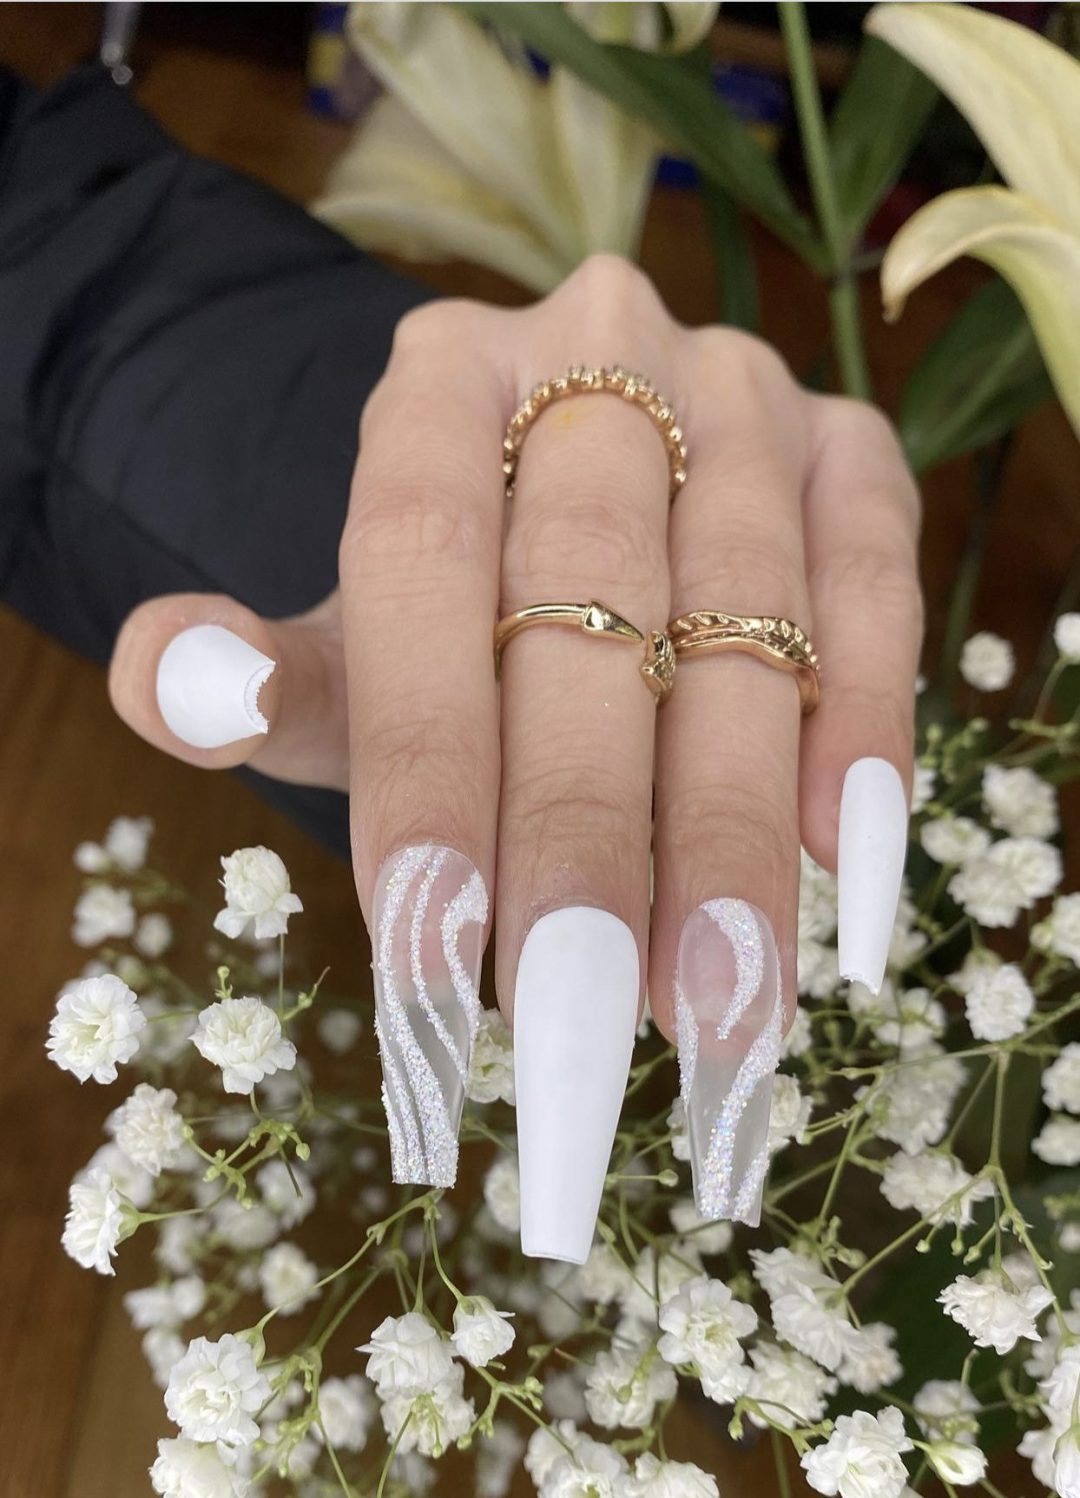 Long white coffin nails with transparent nails and swirls